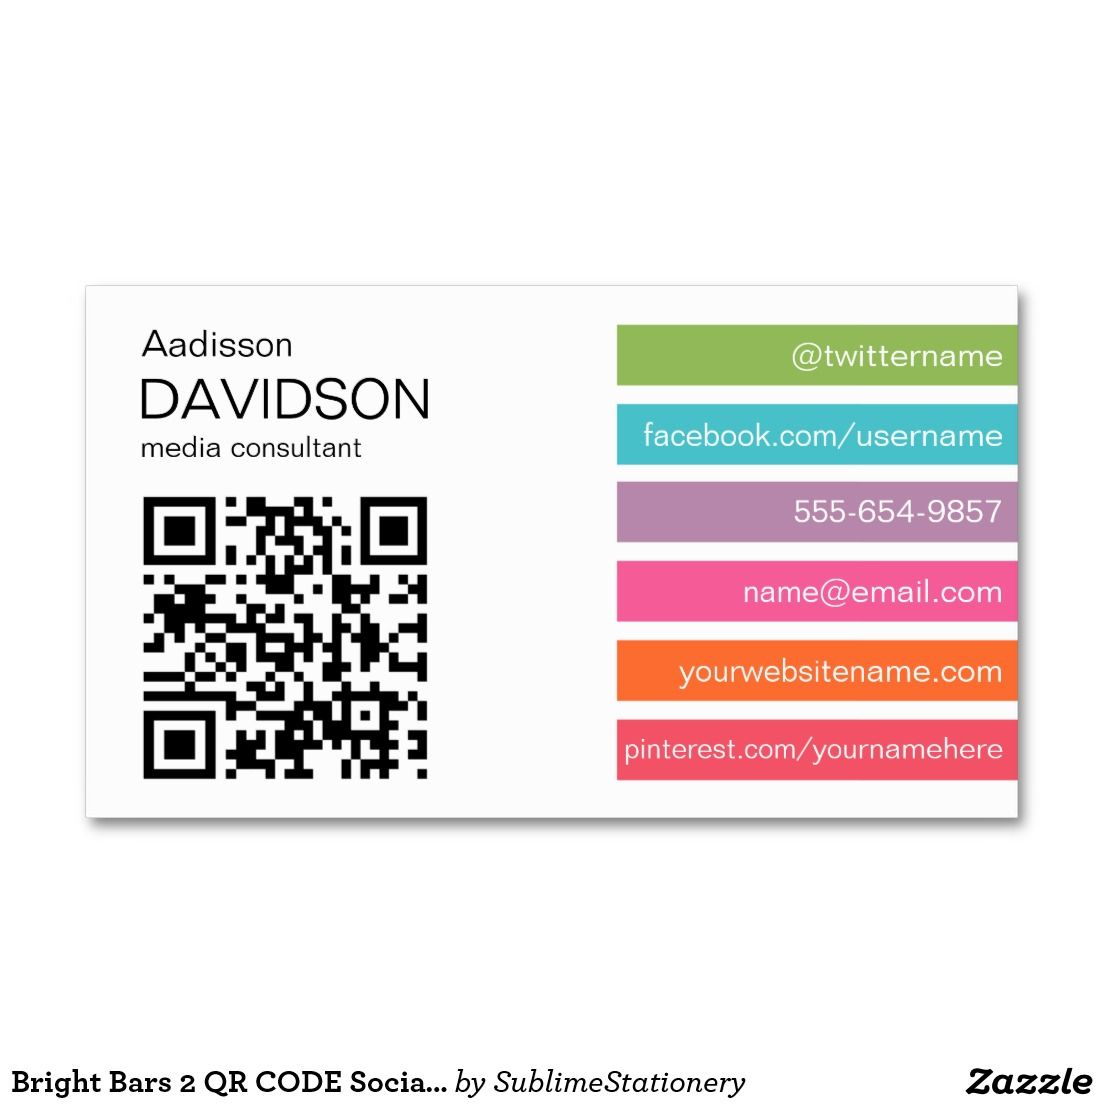 Bright Bars 2 QR CODE Social Media Business Card | Graphics and all ...